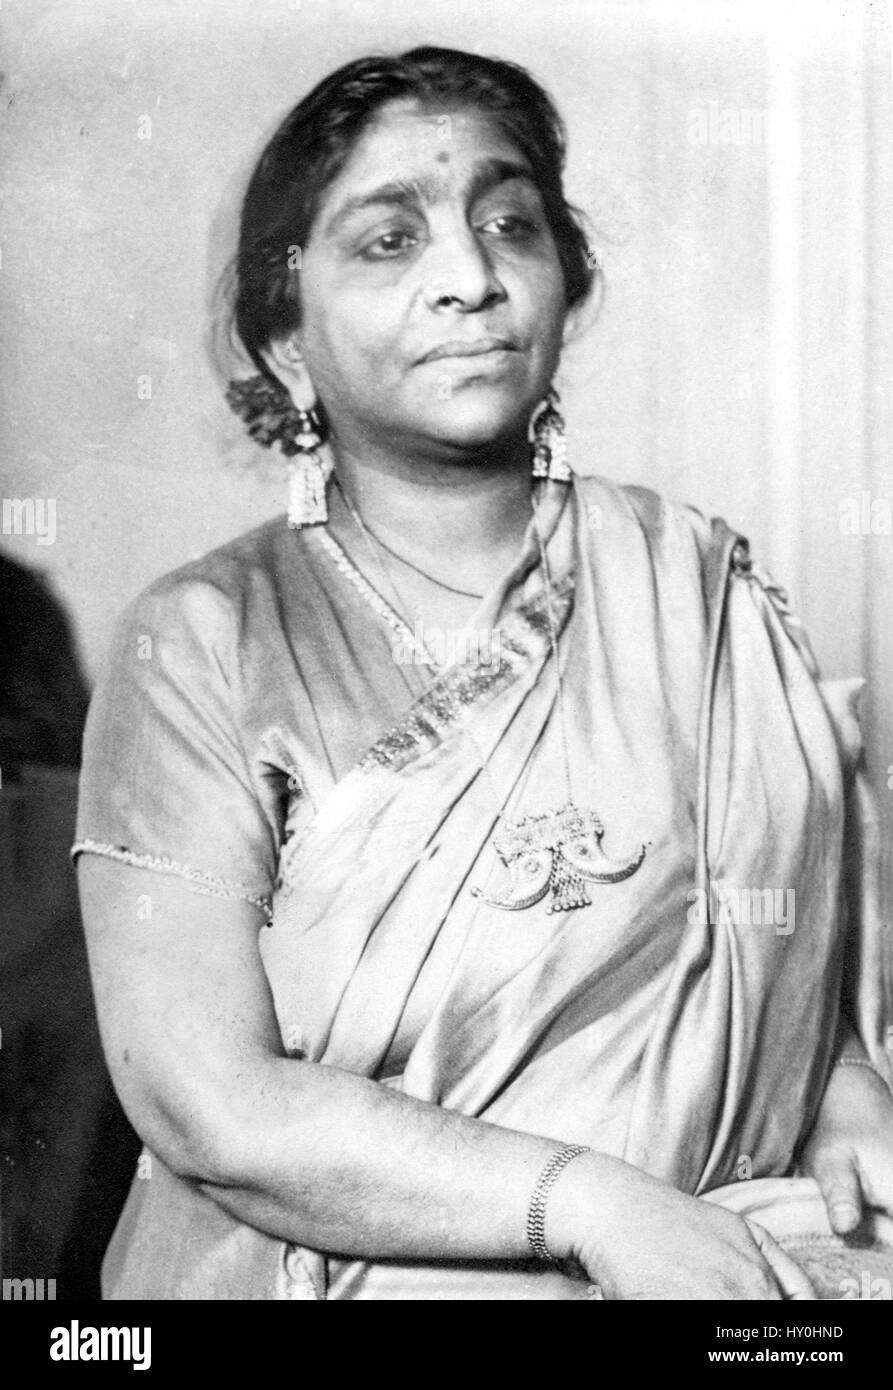 sarojini naidu Sarojini naidu introduction sarojini naidu was a great ideal of the india and great poetess of english language she played a significant role in india for its freedom, struggle and became the first woman governor of up.